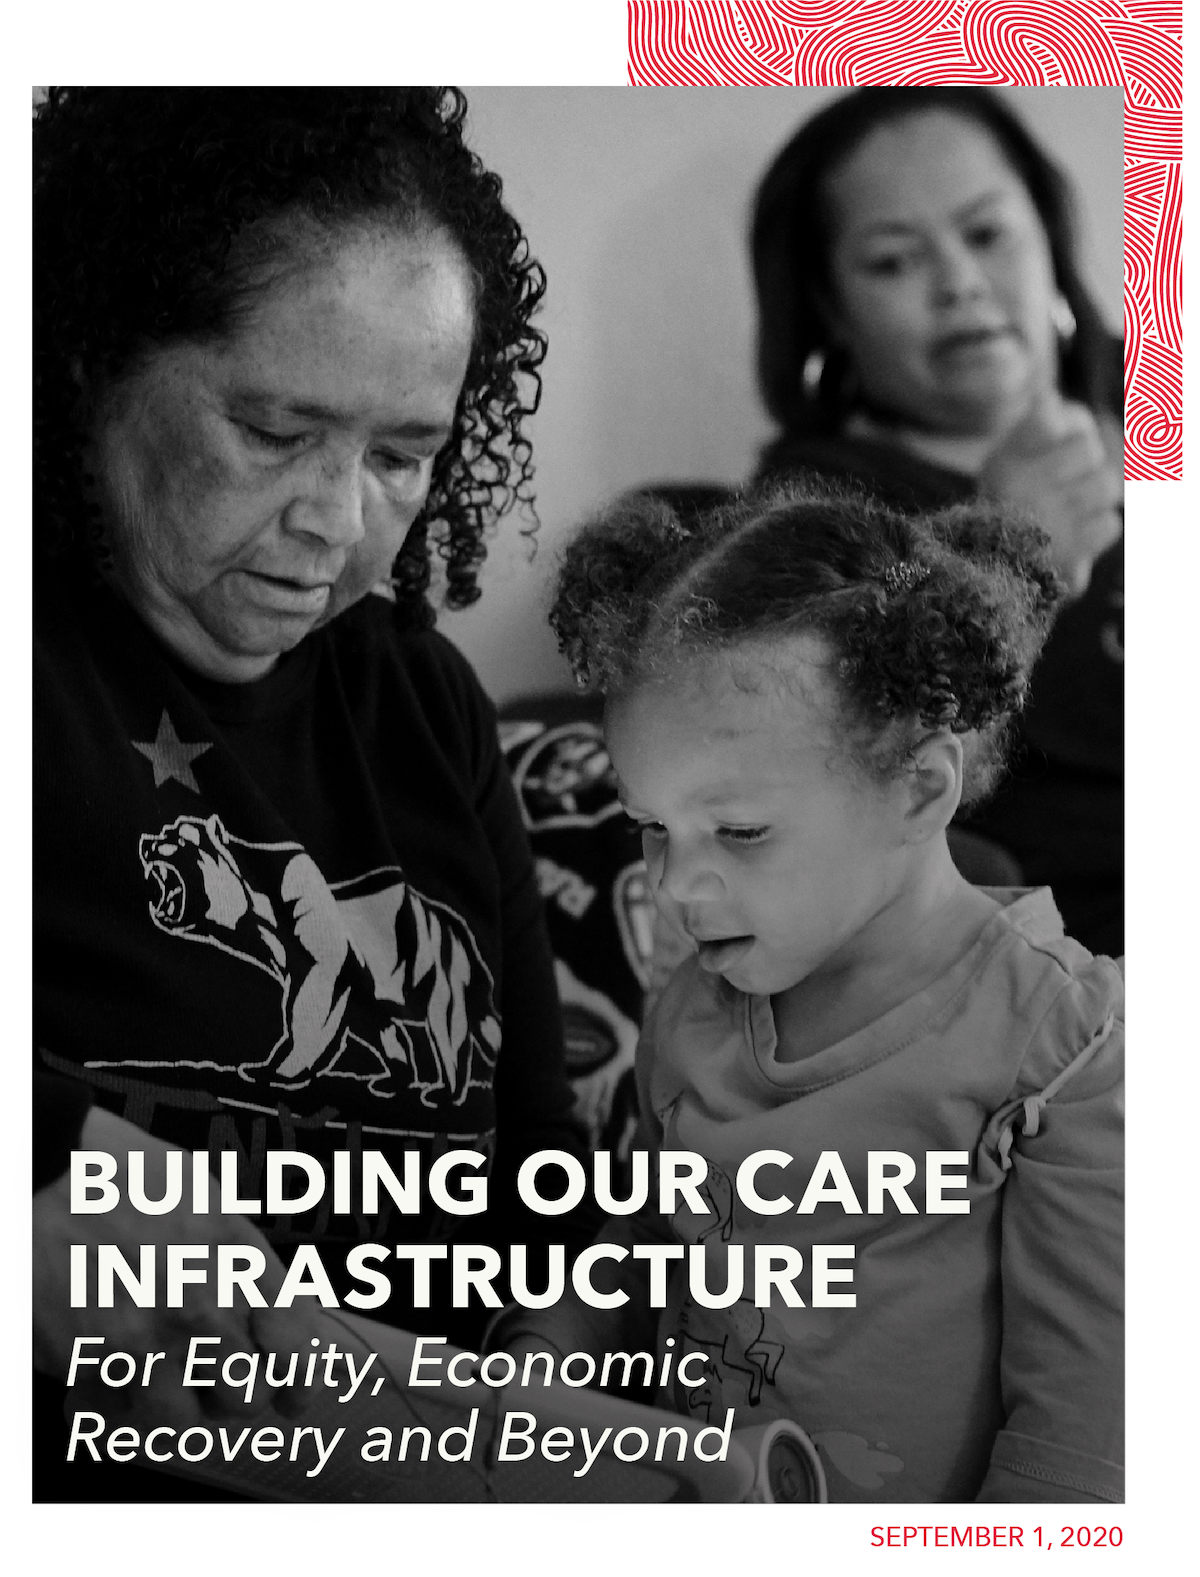 The cover page for our new report, Building Our Care Infrastructure for Equity, Economic Recovery and Beyond